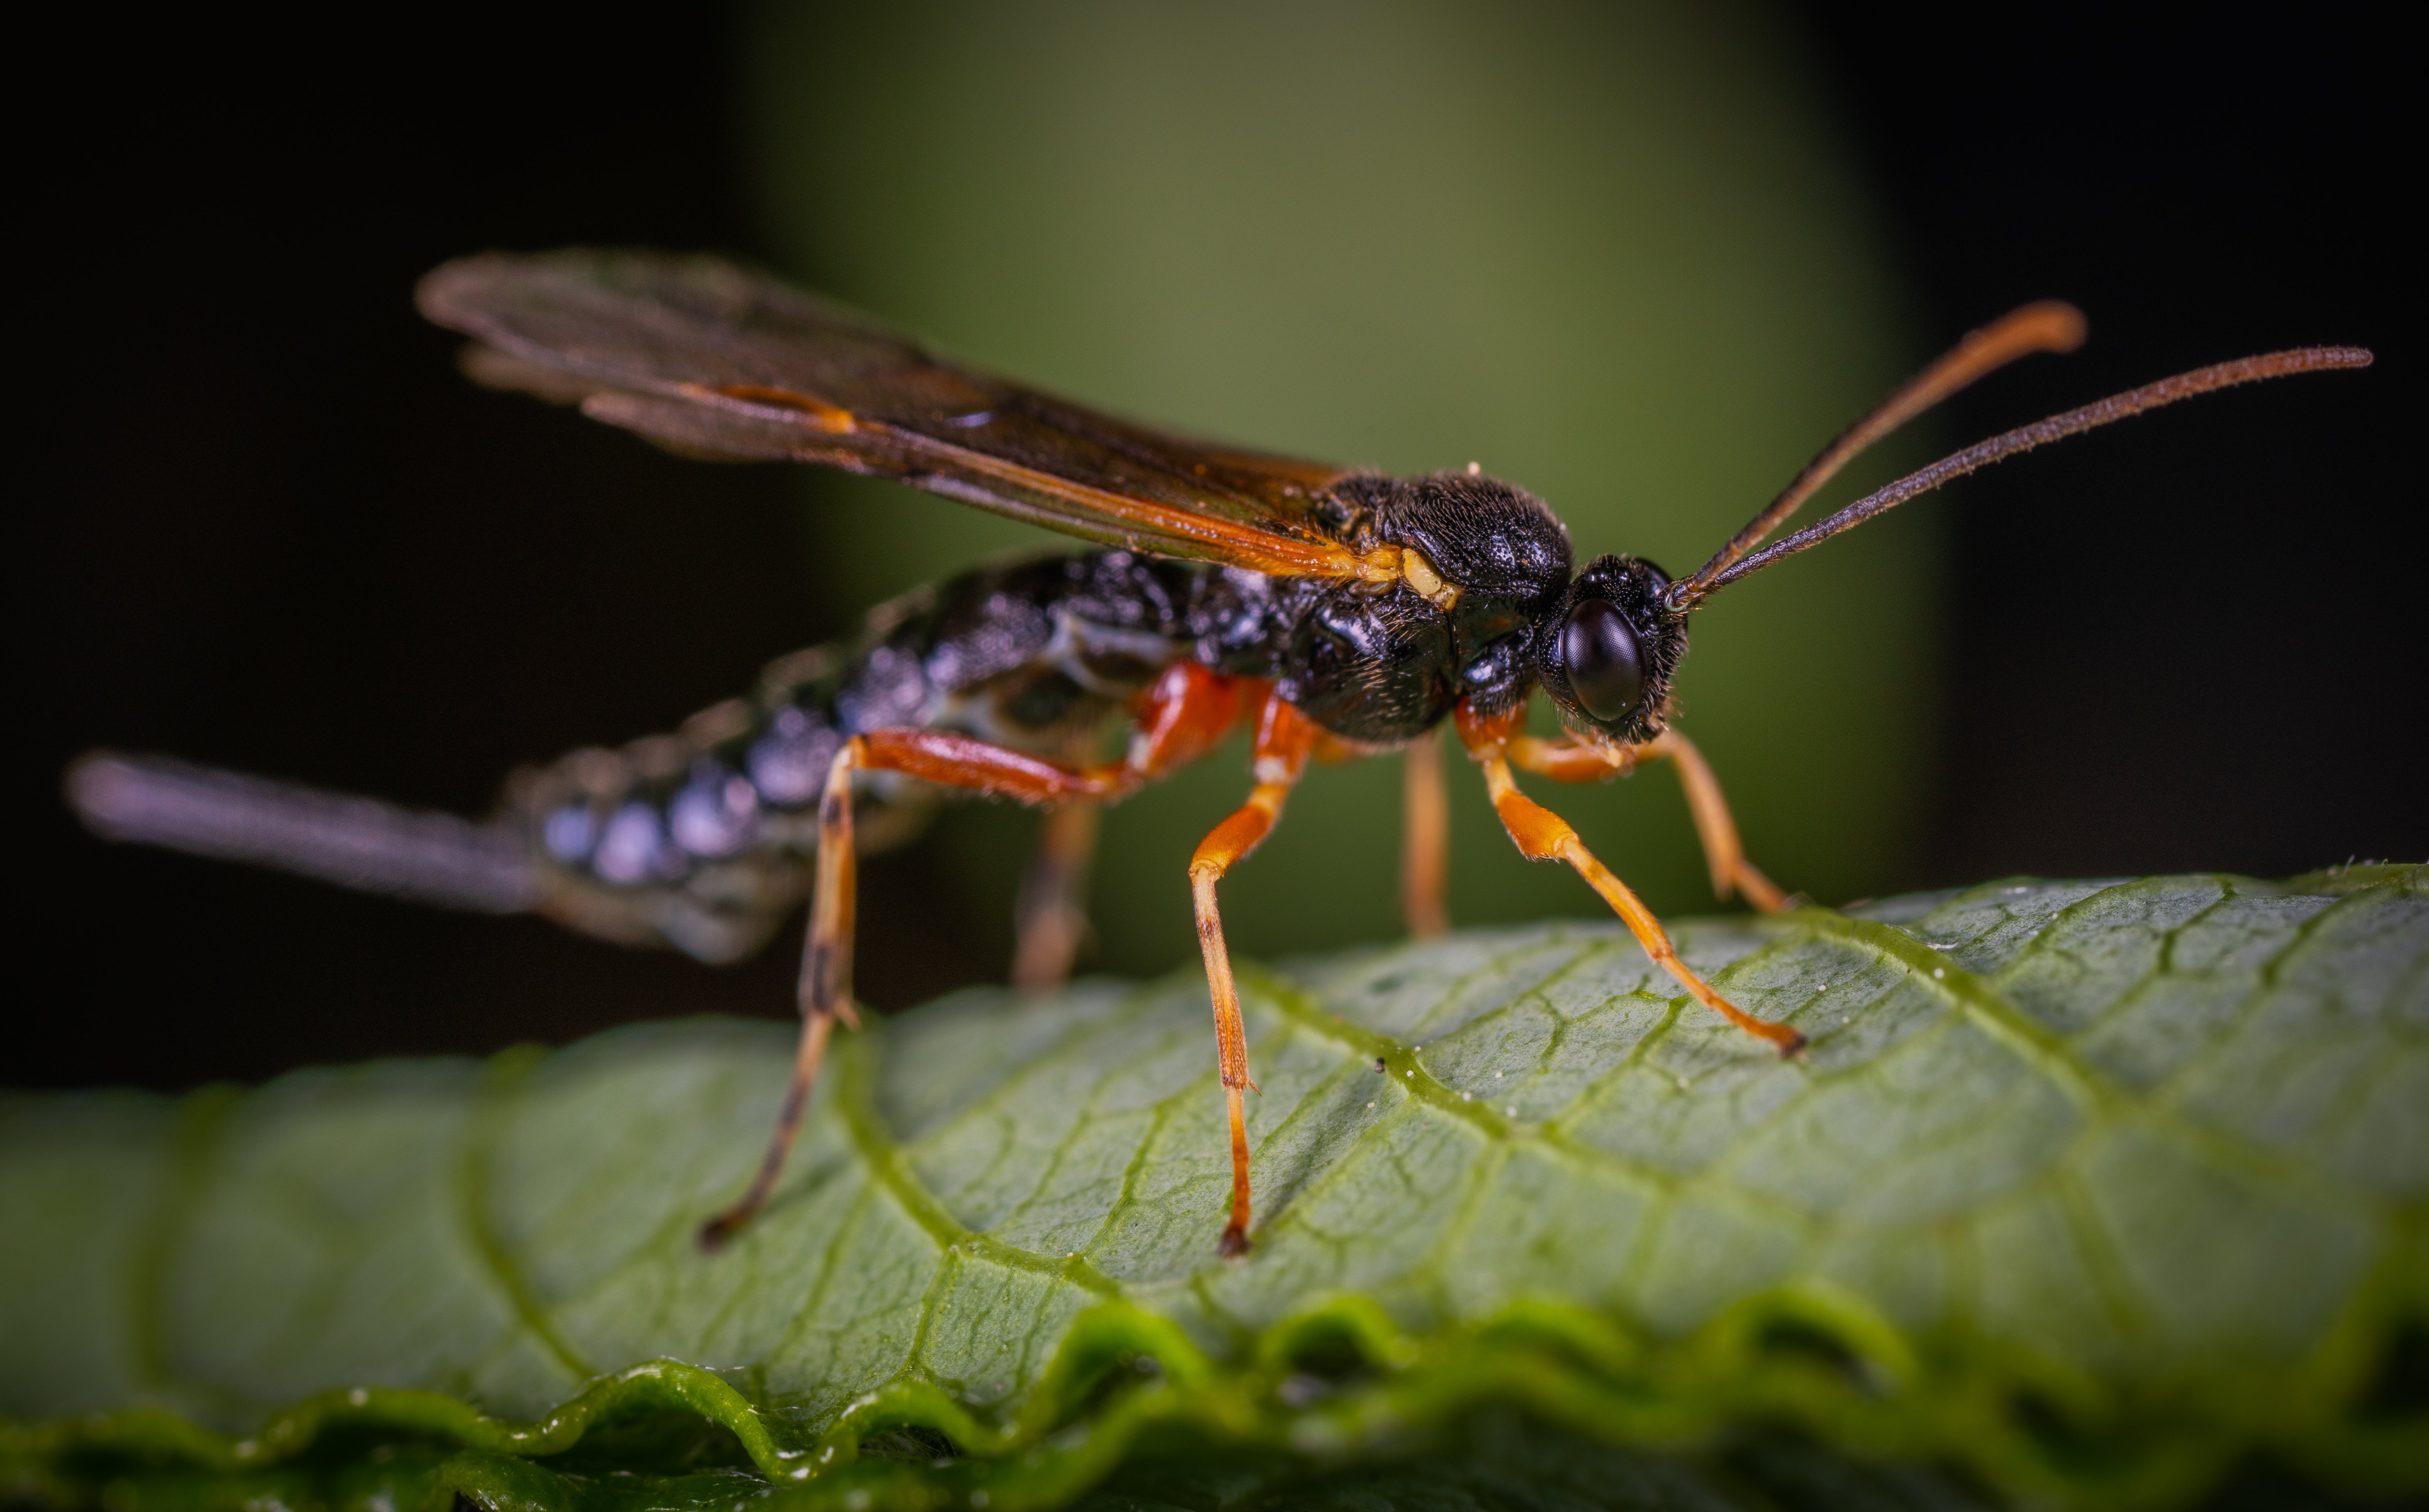 Black Wasp Perched on Green Leaf Closeup Photography